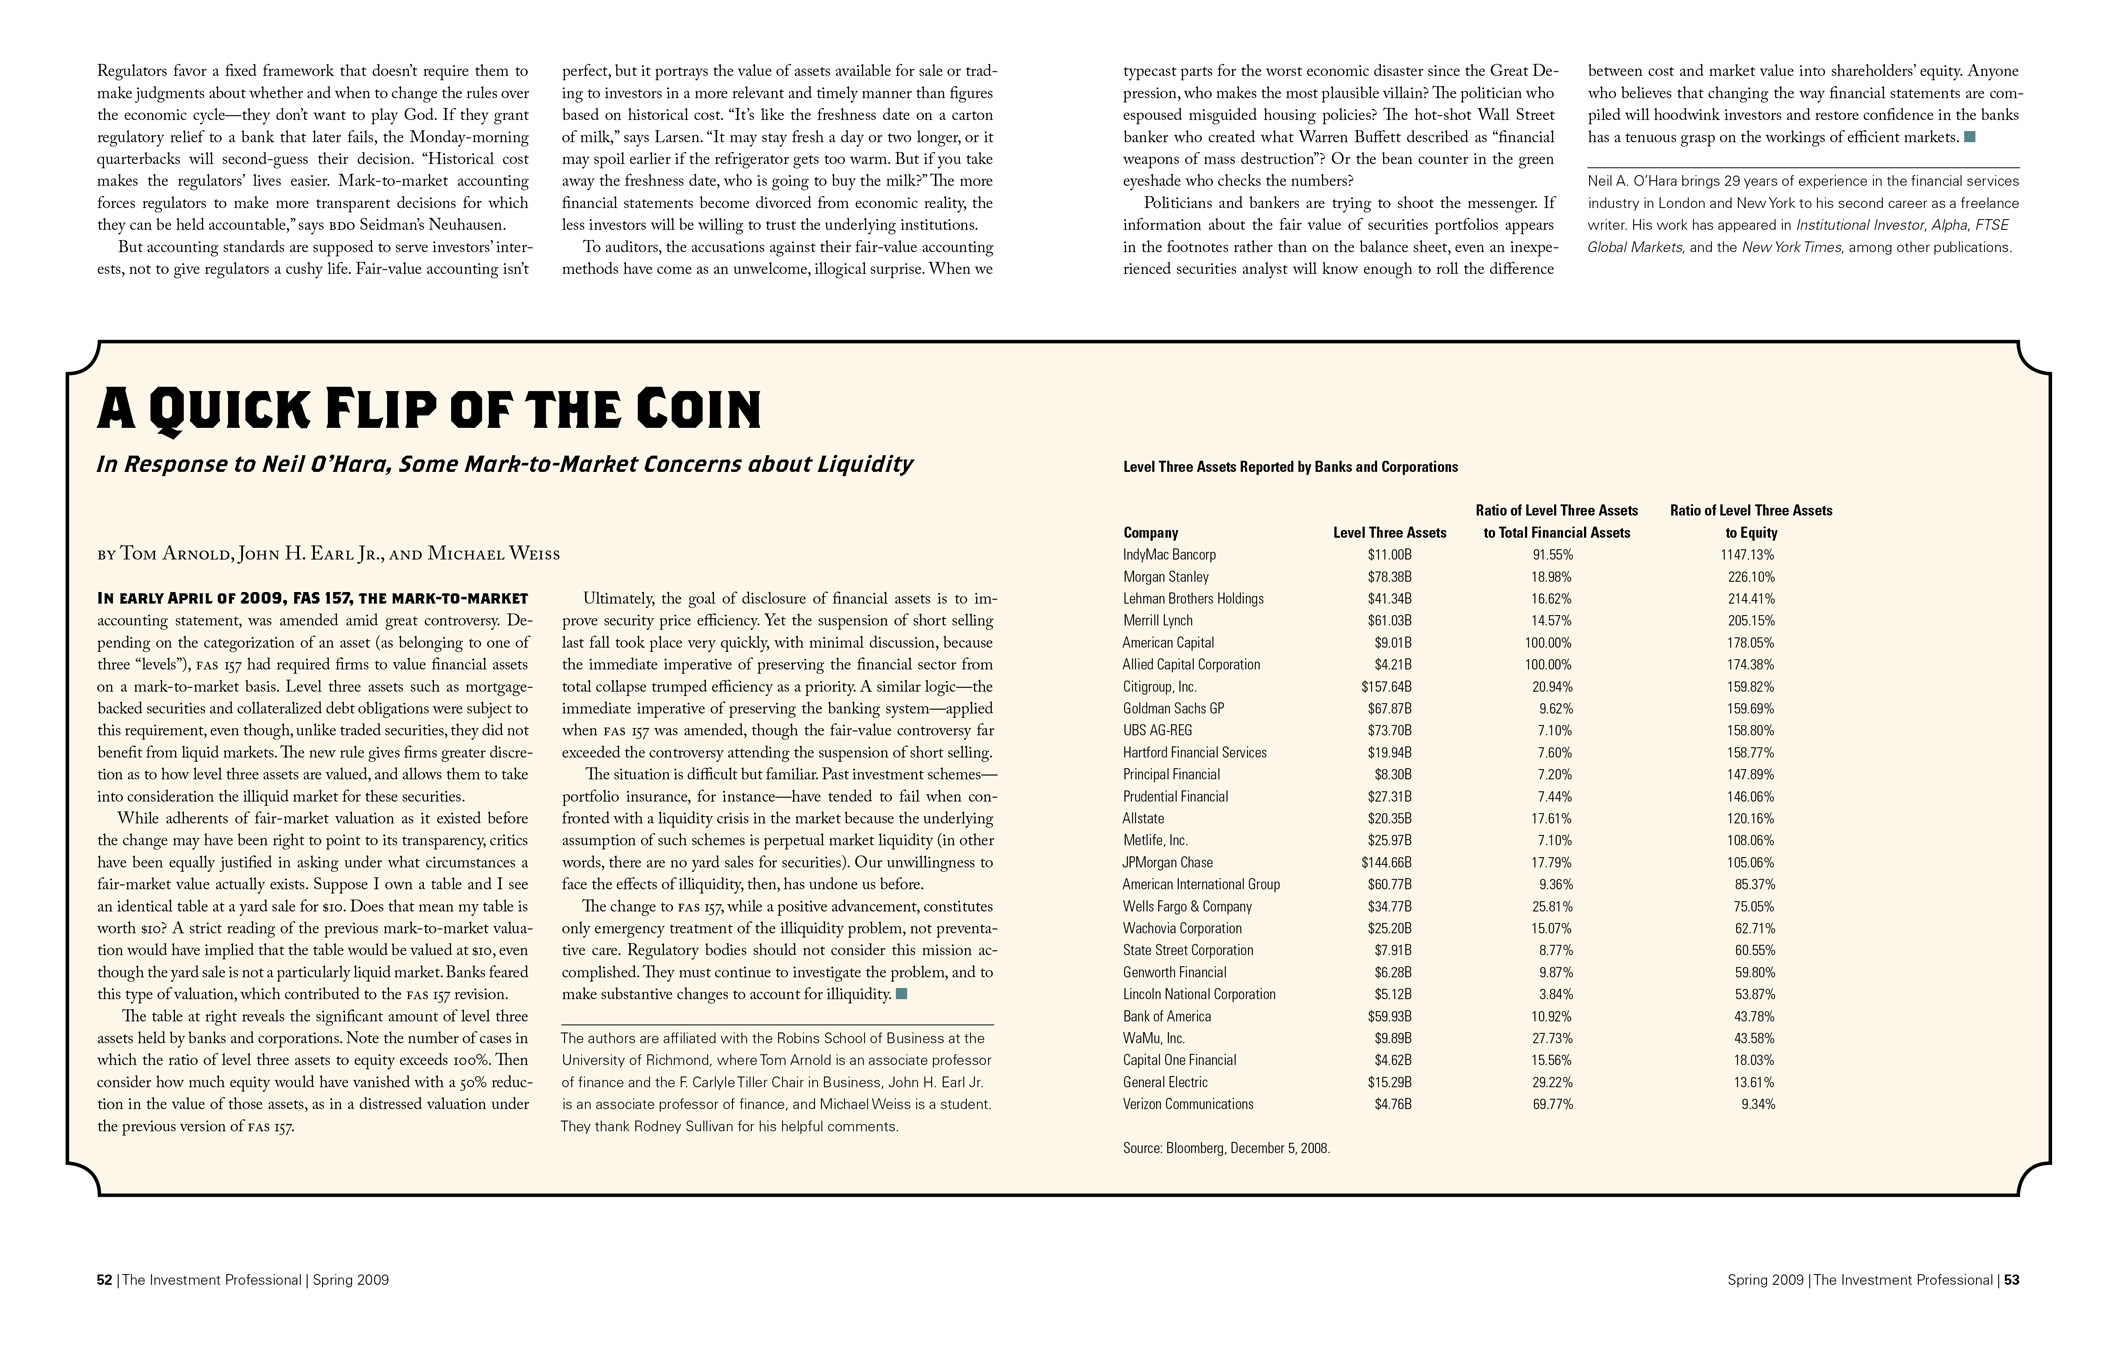 Article in The Investment Professional about fair-value accounting.